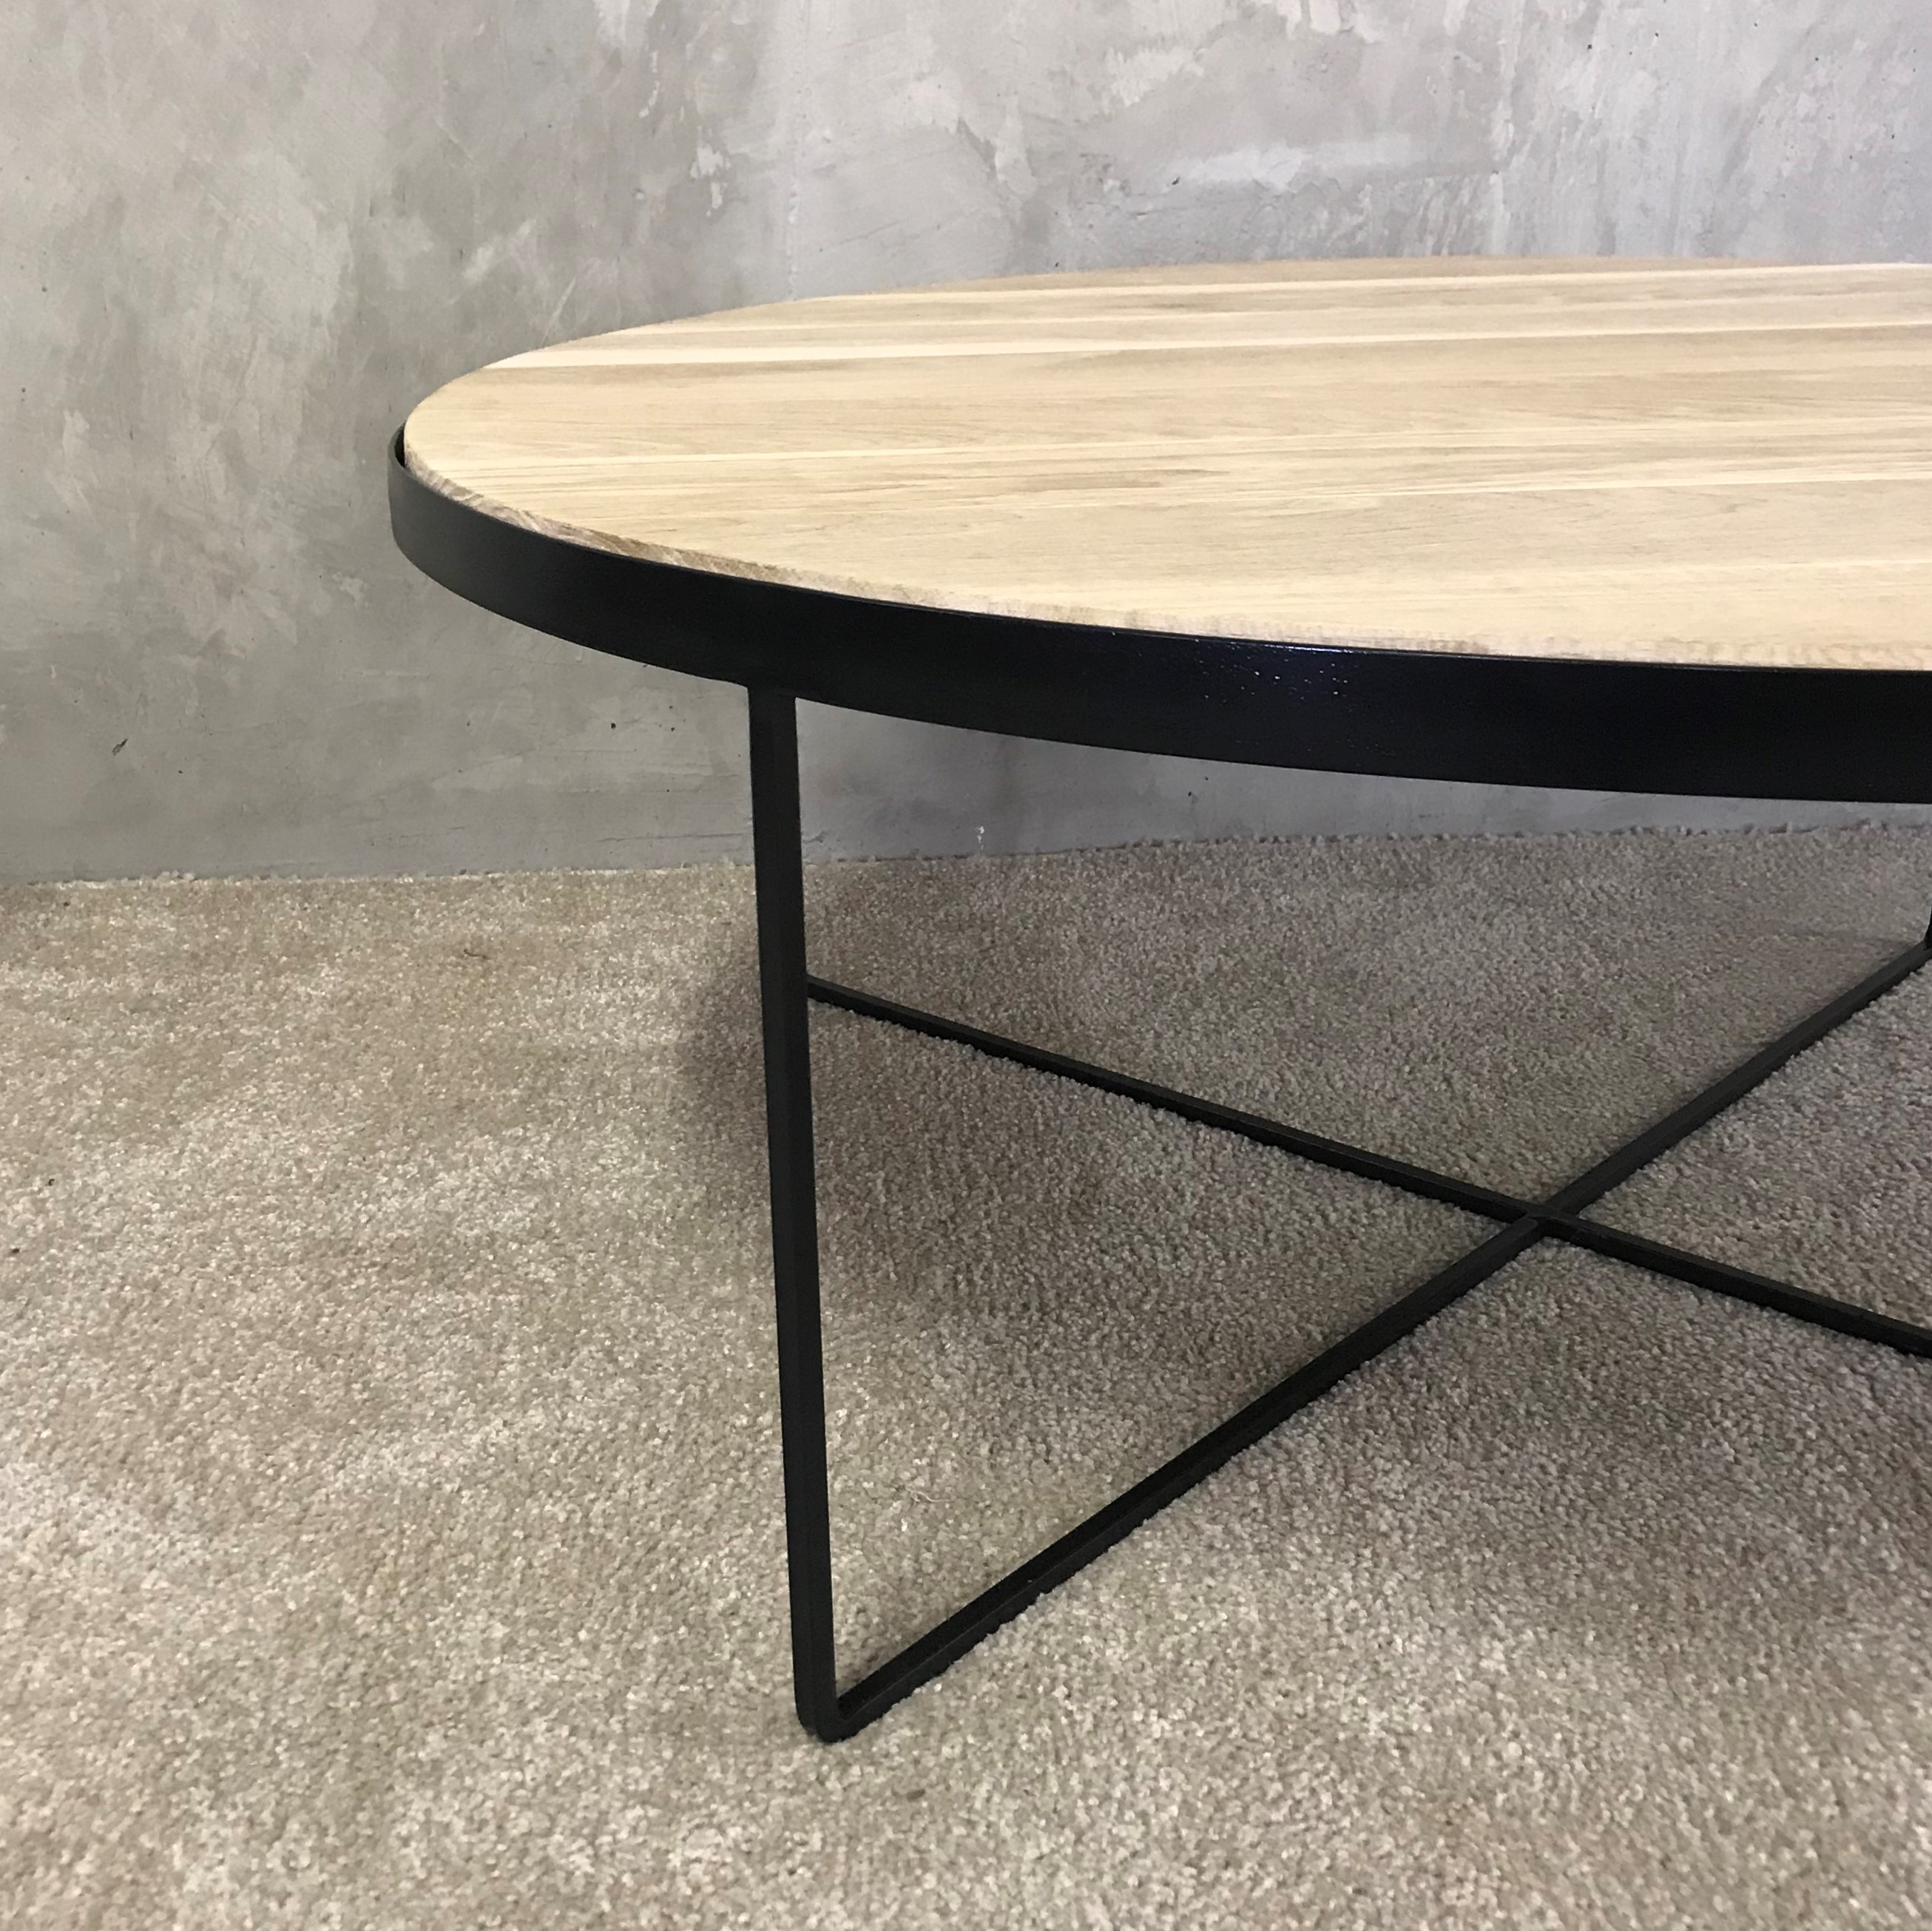 Oia White Marble Dining Table Oak 100cm: Melonwoods Indonesian Furniture